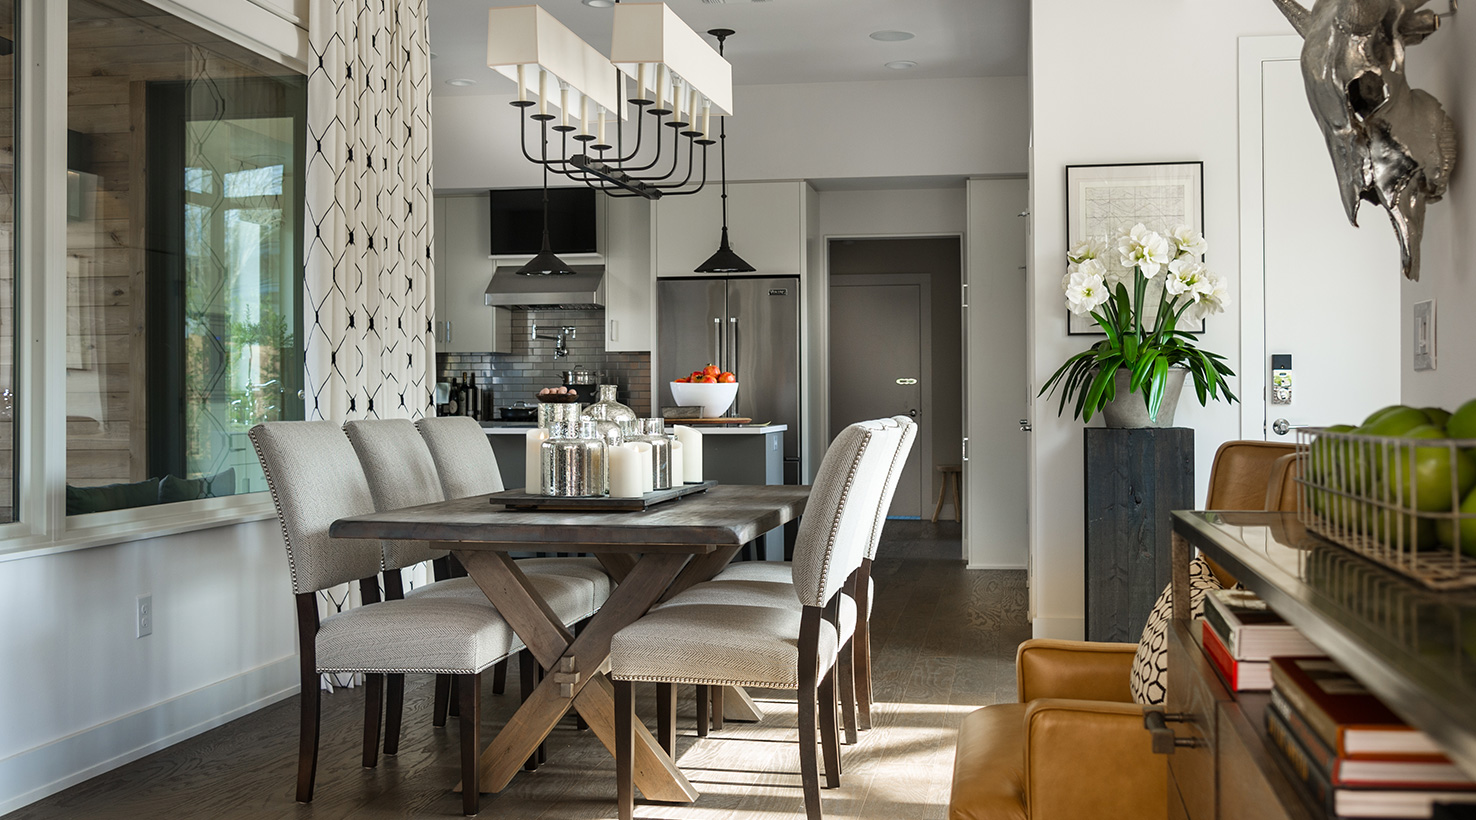 The hgtv smart home 2015 sponsored by sherwin williams for Living room designs with dining table